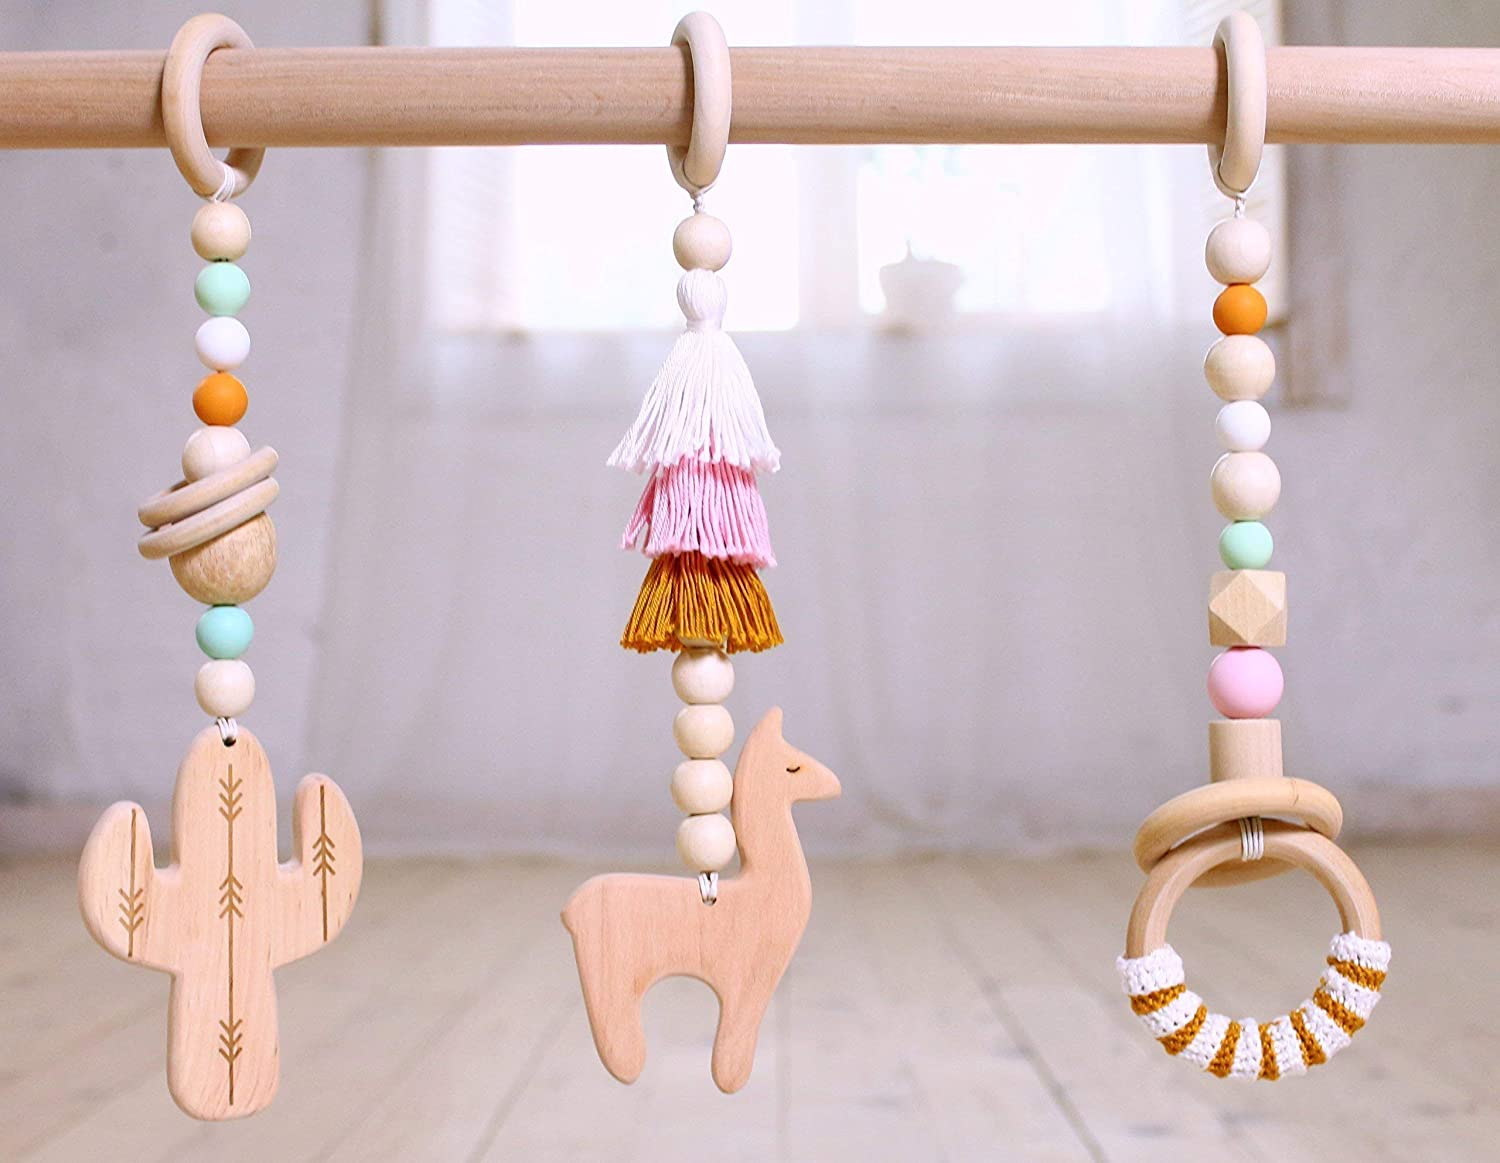 Wooden baby gym mobiles. Set of 3: cactus, llama, ring. Desert. Boho. Travel. Play Gym Accessory. Wood activity gym mobiles. Baby Shower Gift. Pink mustard mint